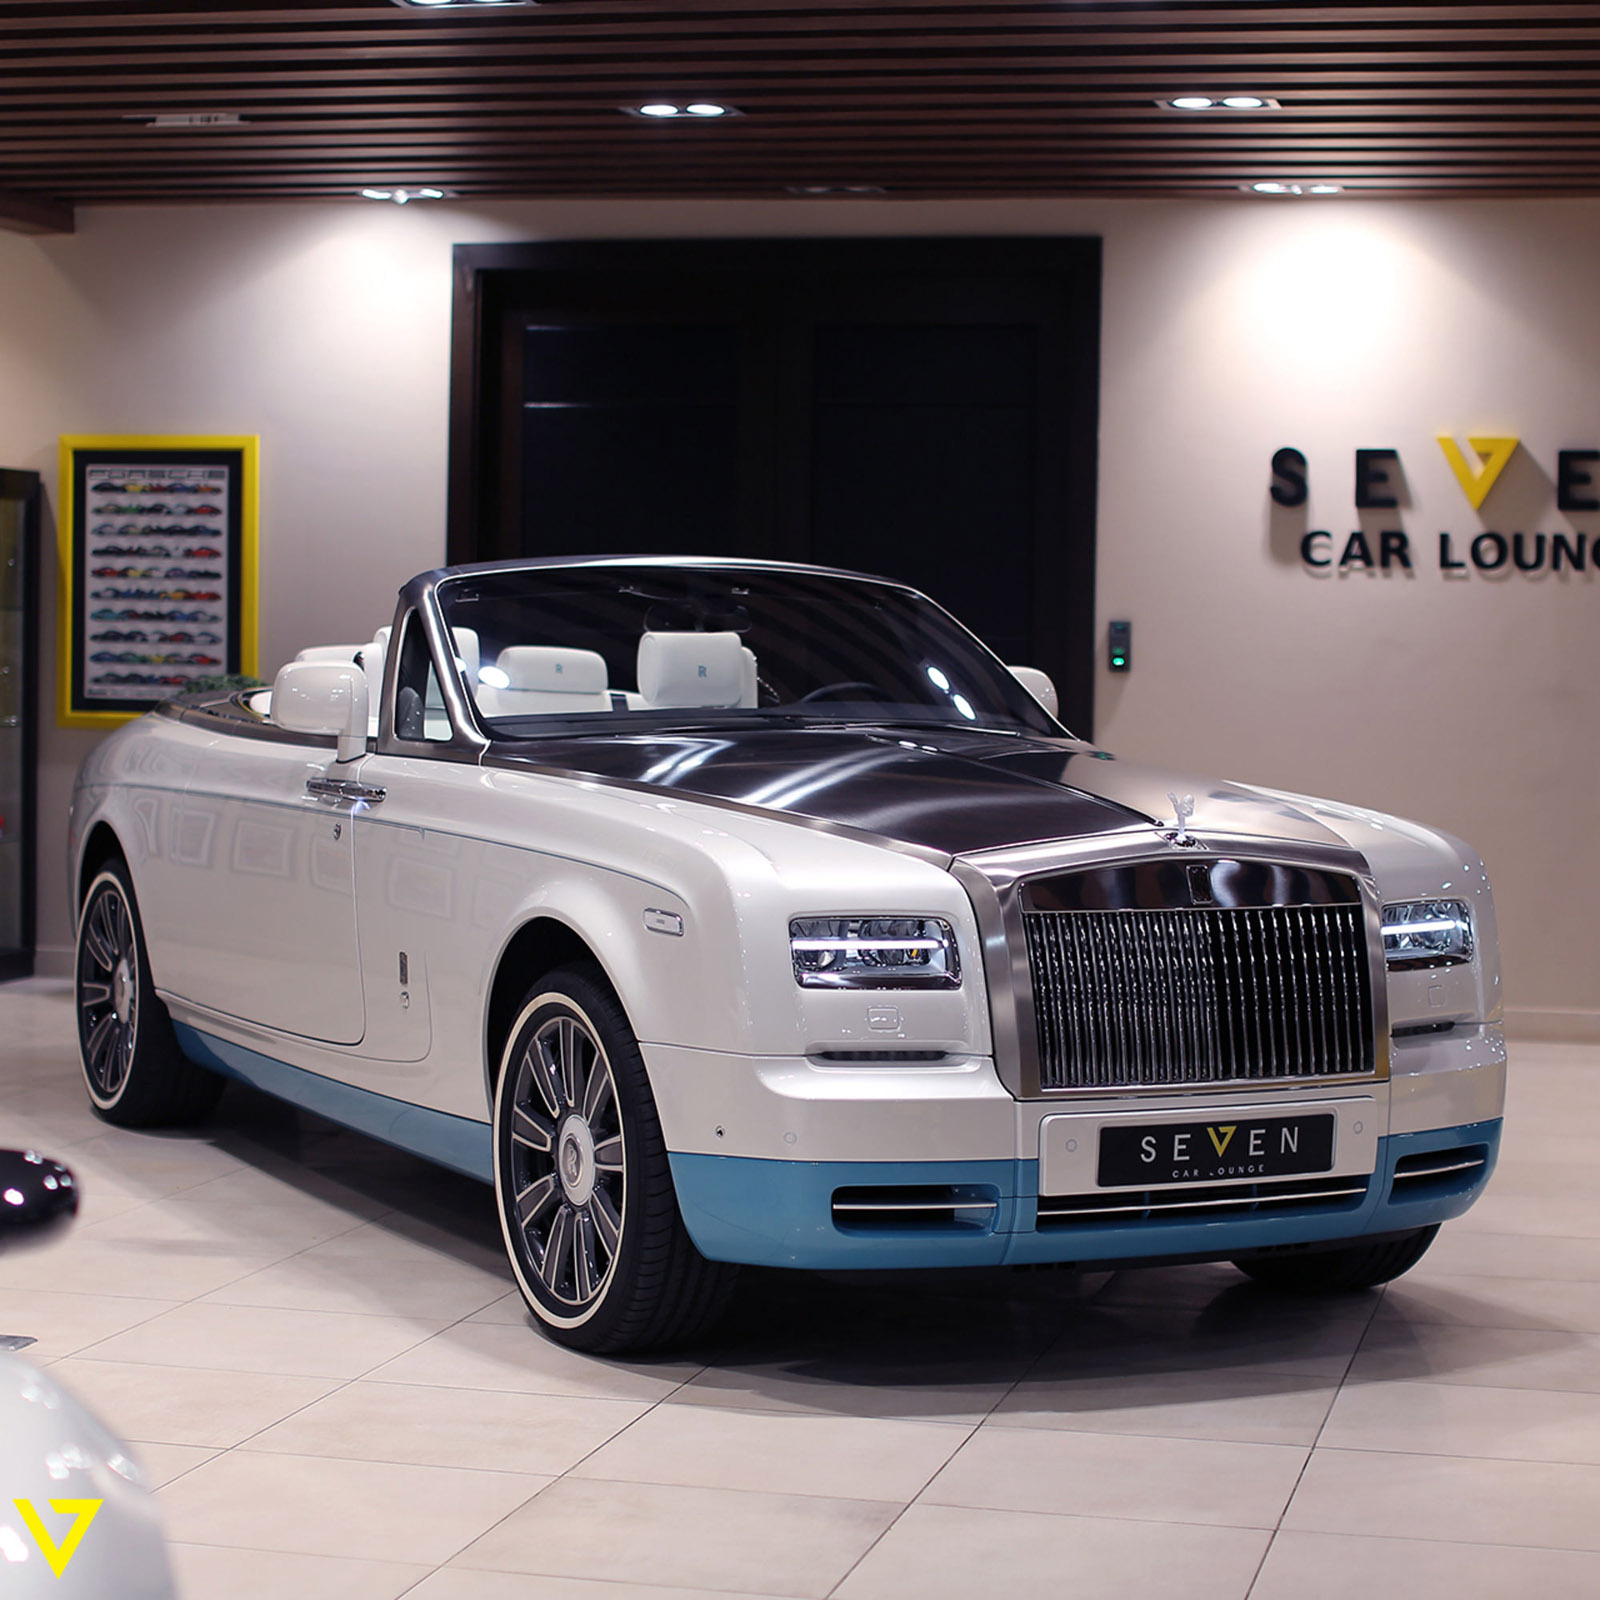 The Last RollsRoyce Phantom Drophead Coupe Is Up For Sale